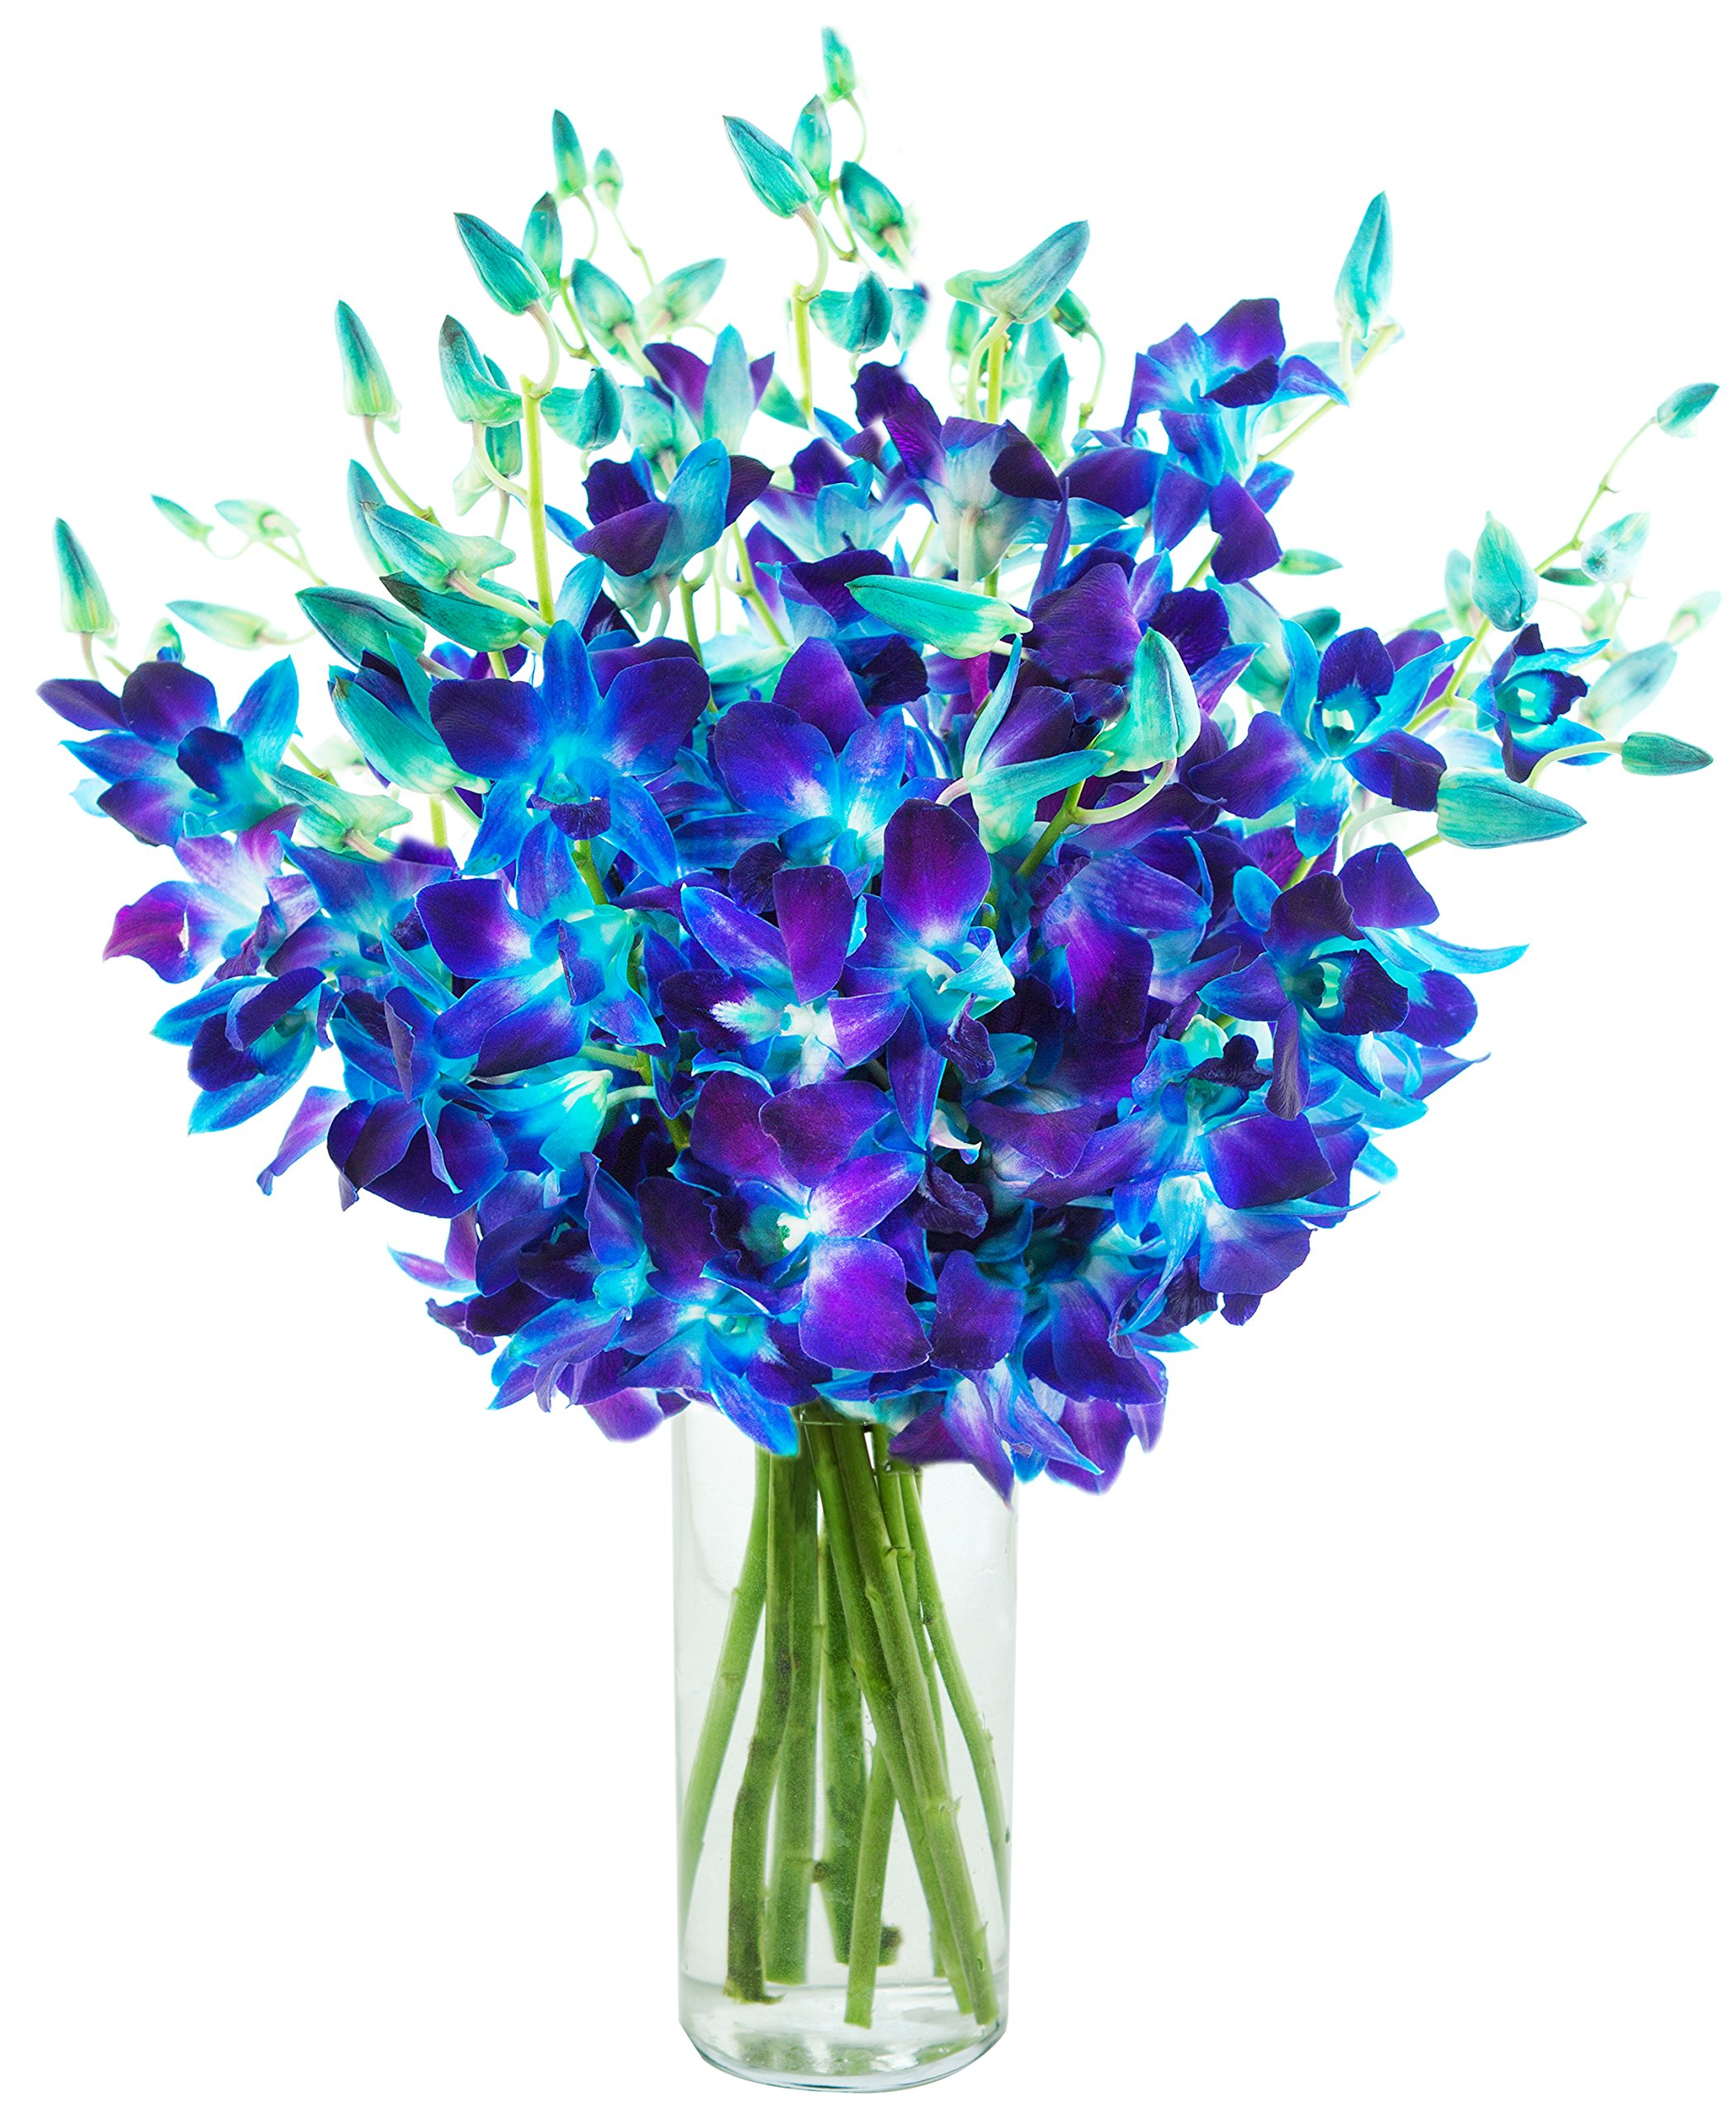 Exotic Sapphire Orchid Bouquet Of 20 Fresh Blue Dendrobium Orchids From Thailand with Free Vase Included